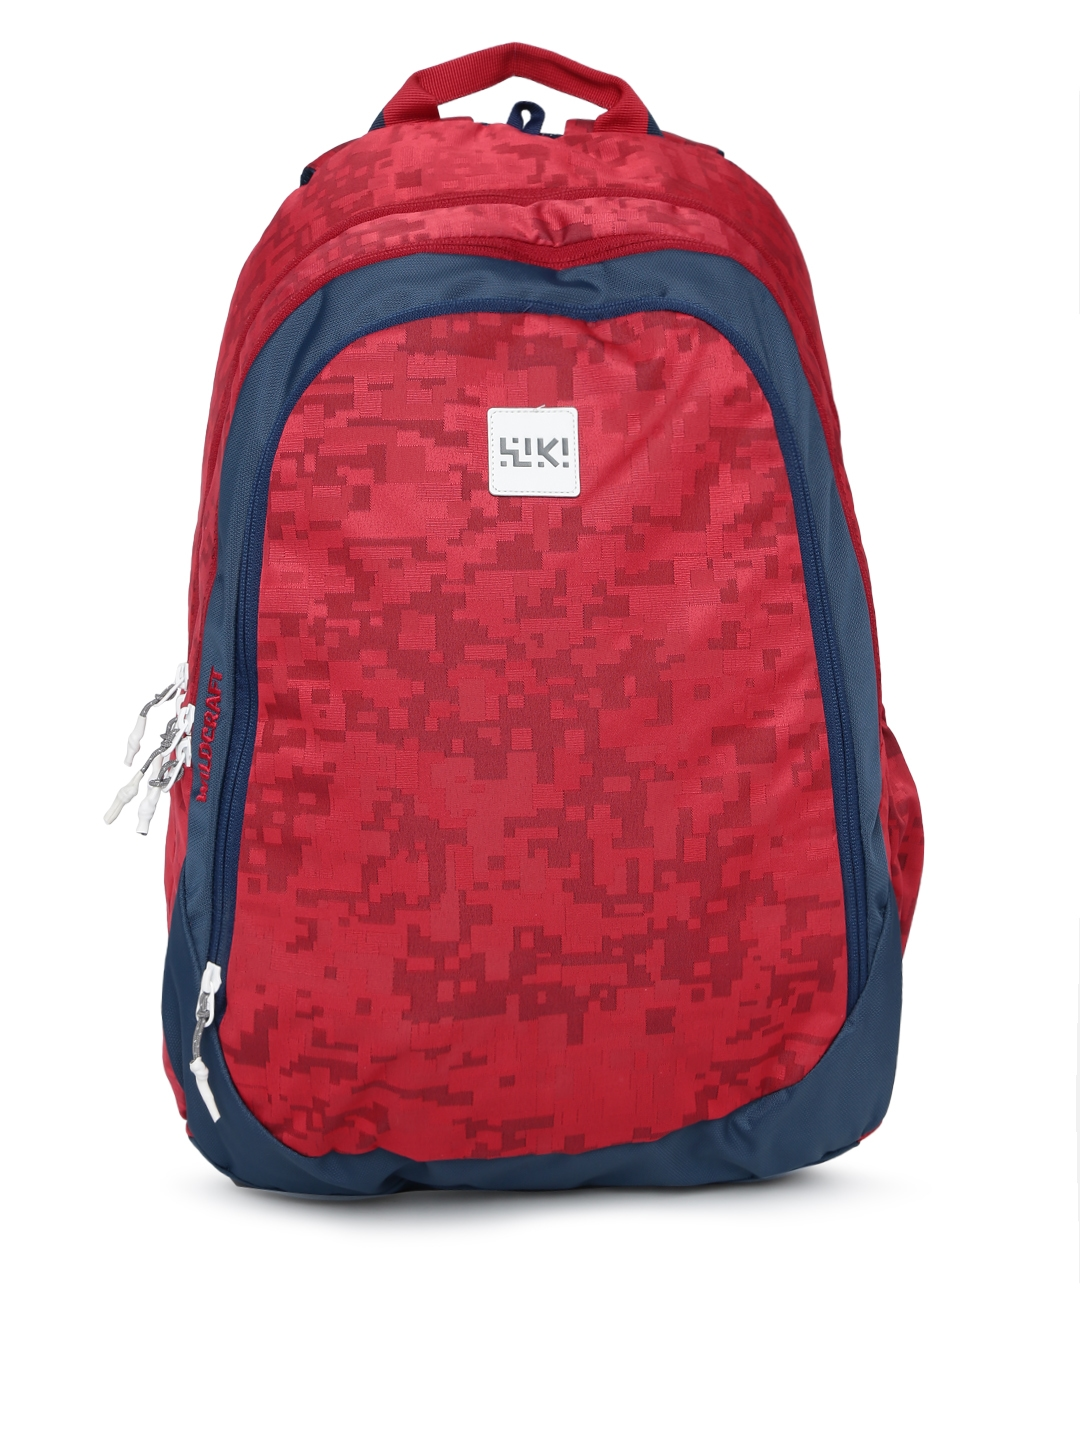 Wildcraft Unisex Red Graphic WIKI 7 Jacquard Backpack